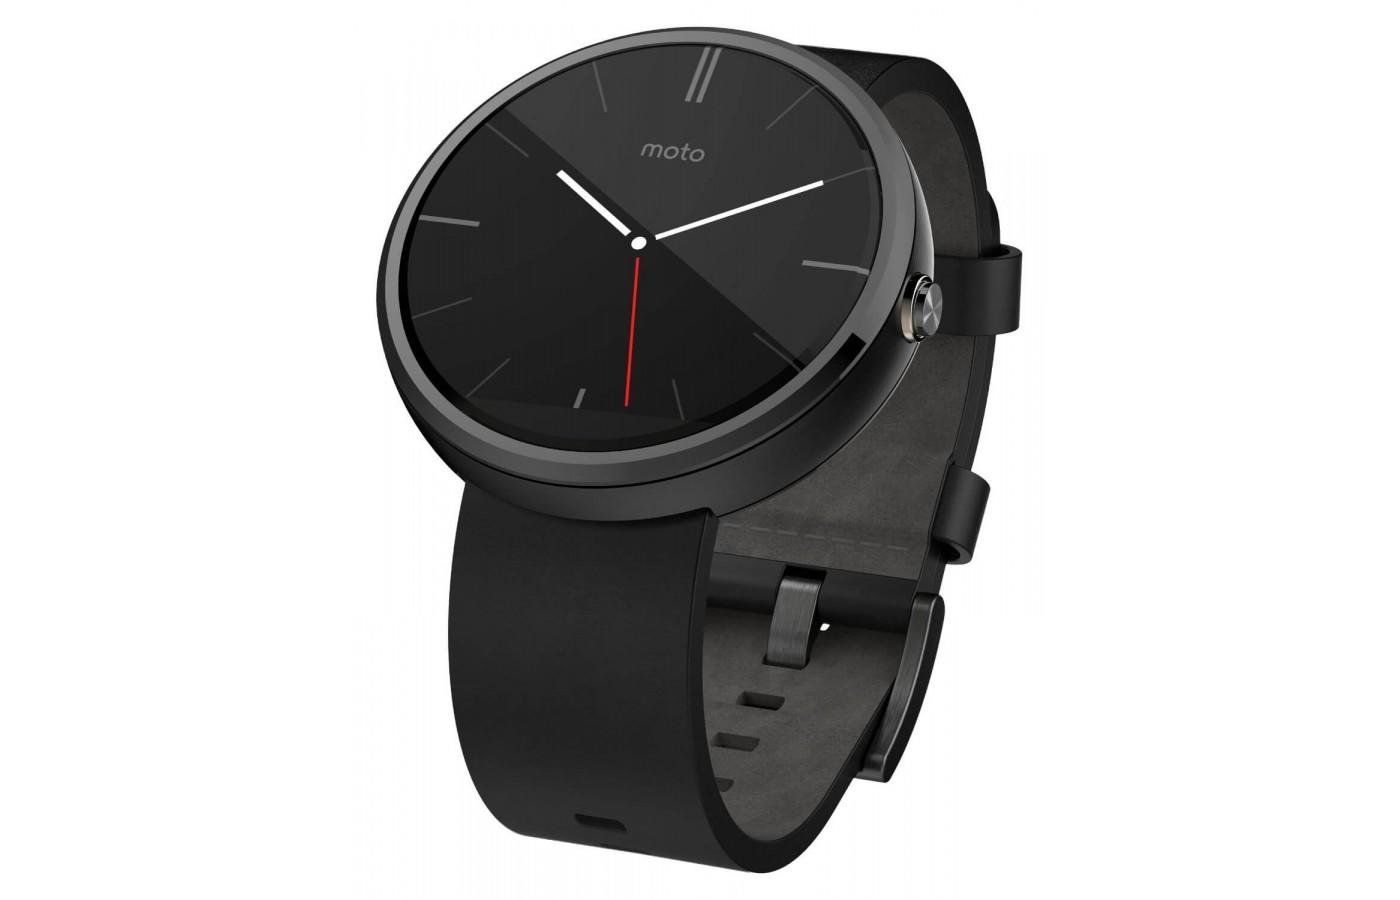 Motorola Moto 360 (1st gen.) Smart Watch